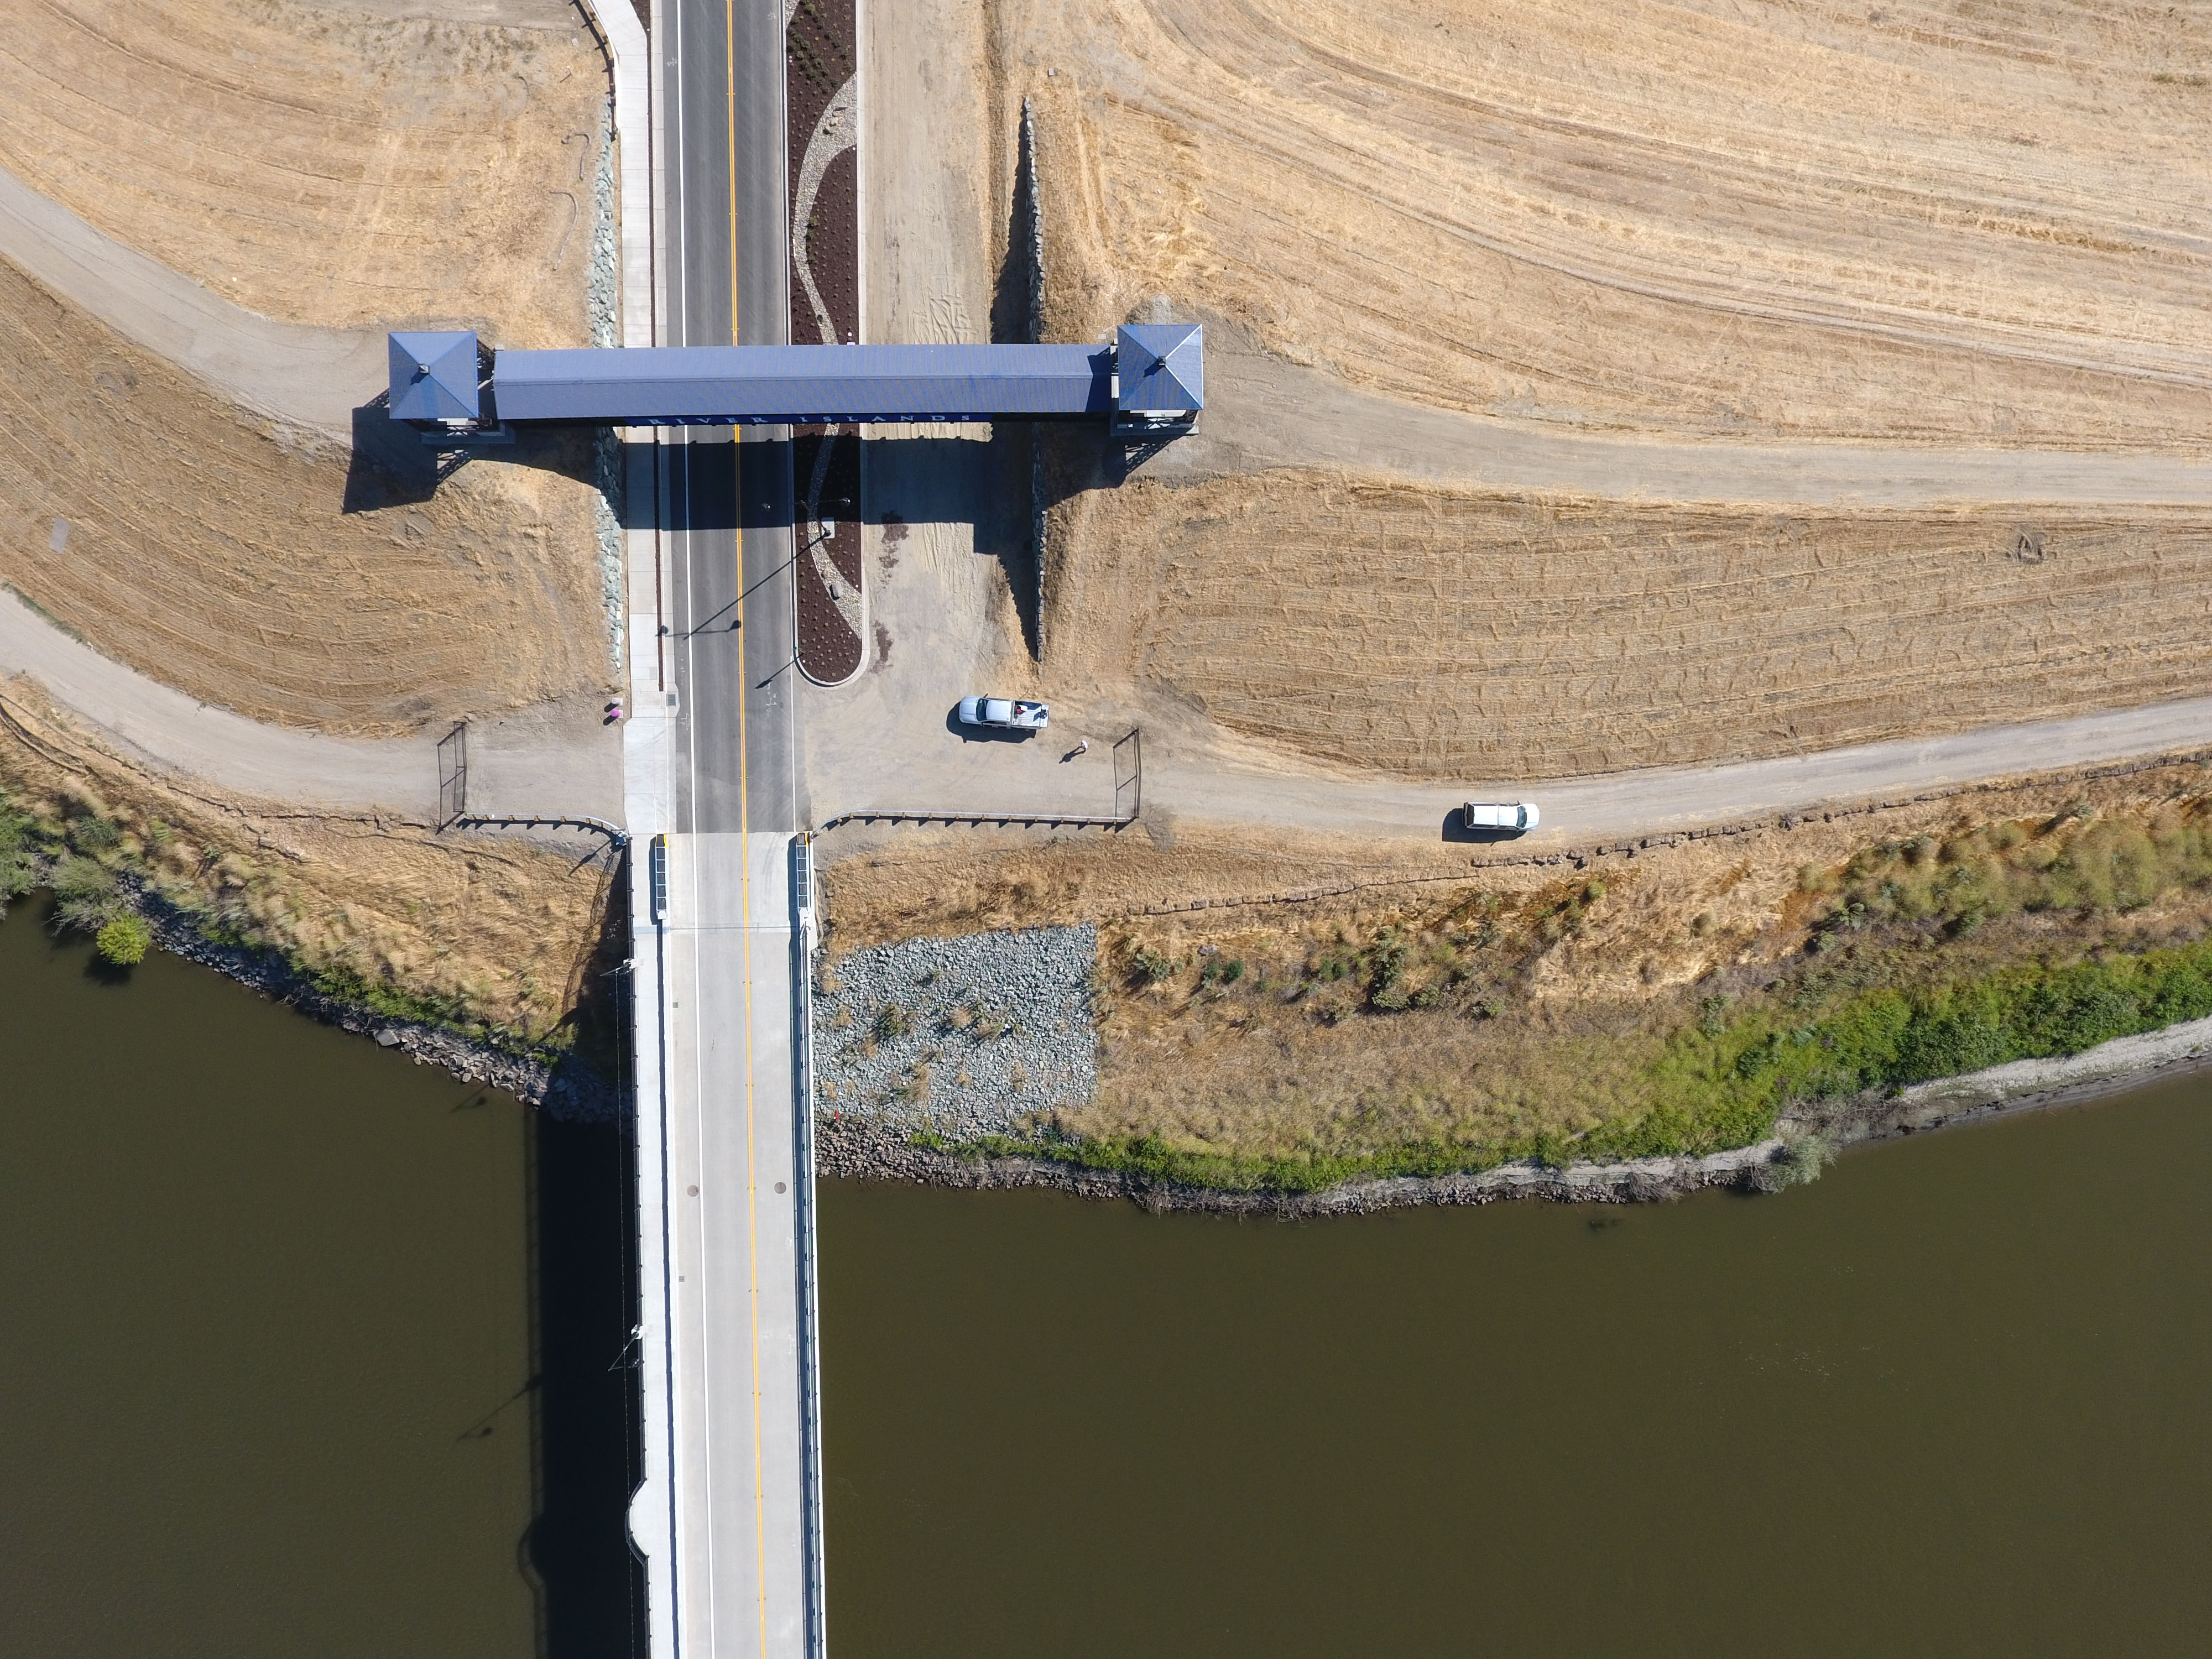 bird's-eye view photography of concrete bridge